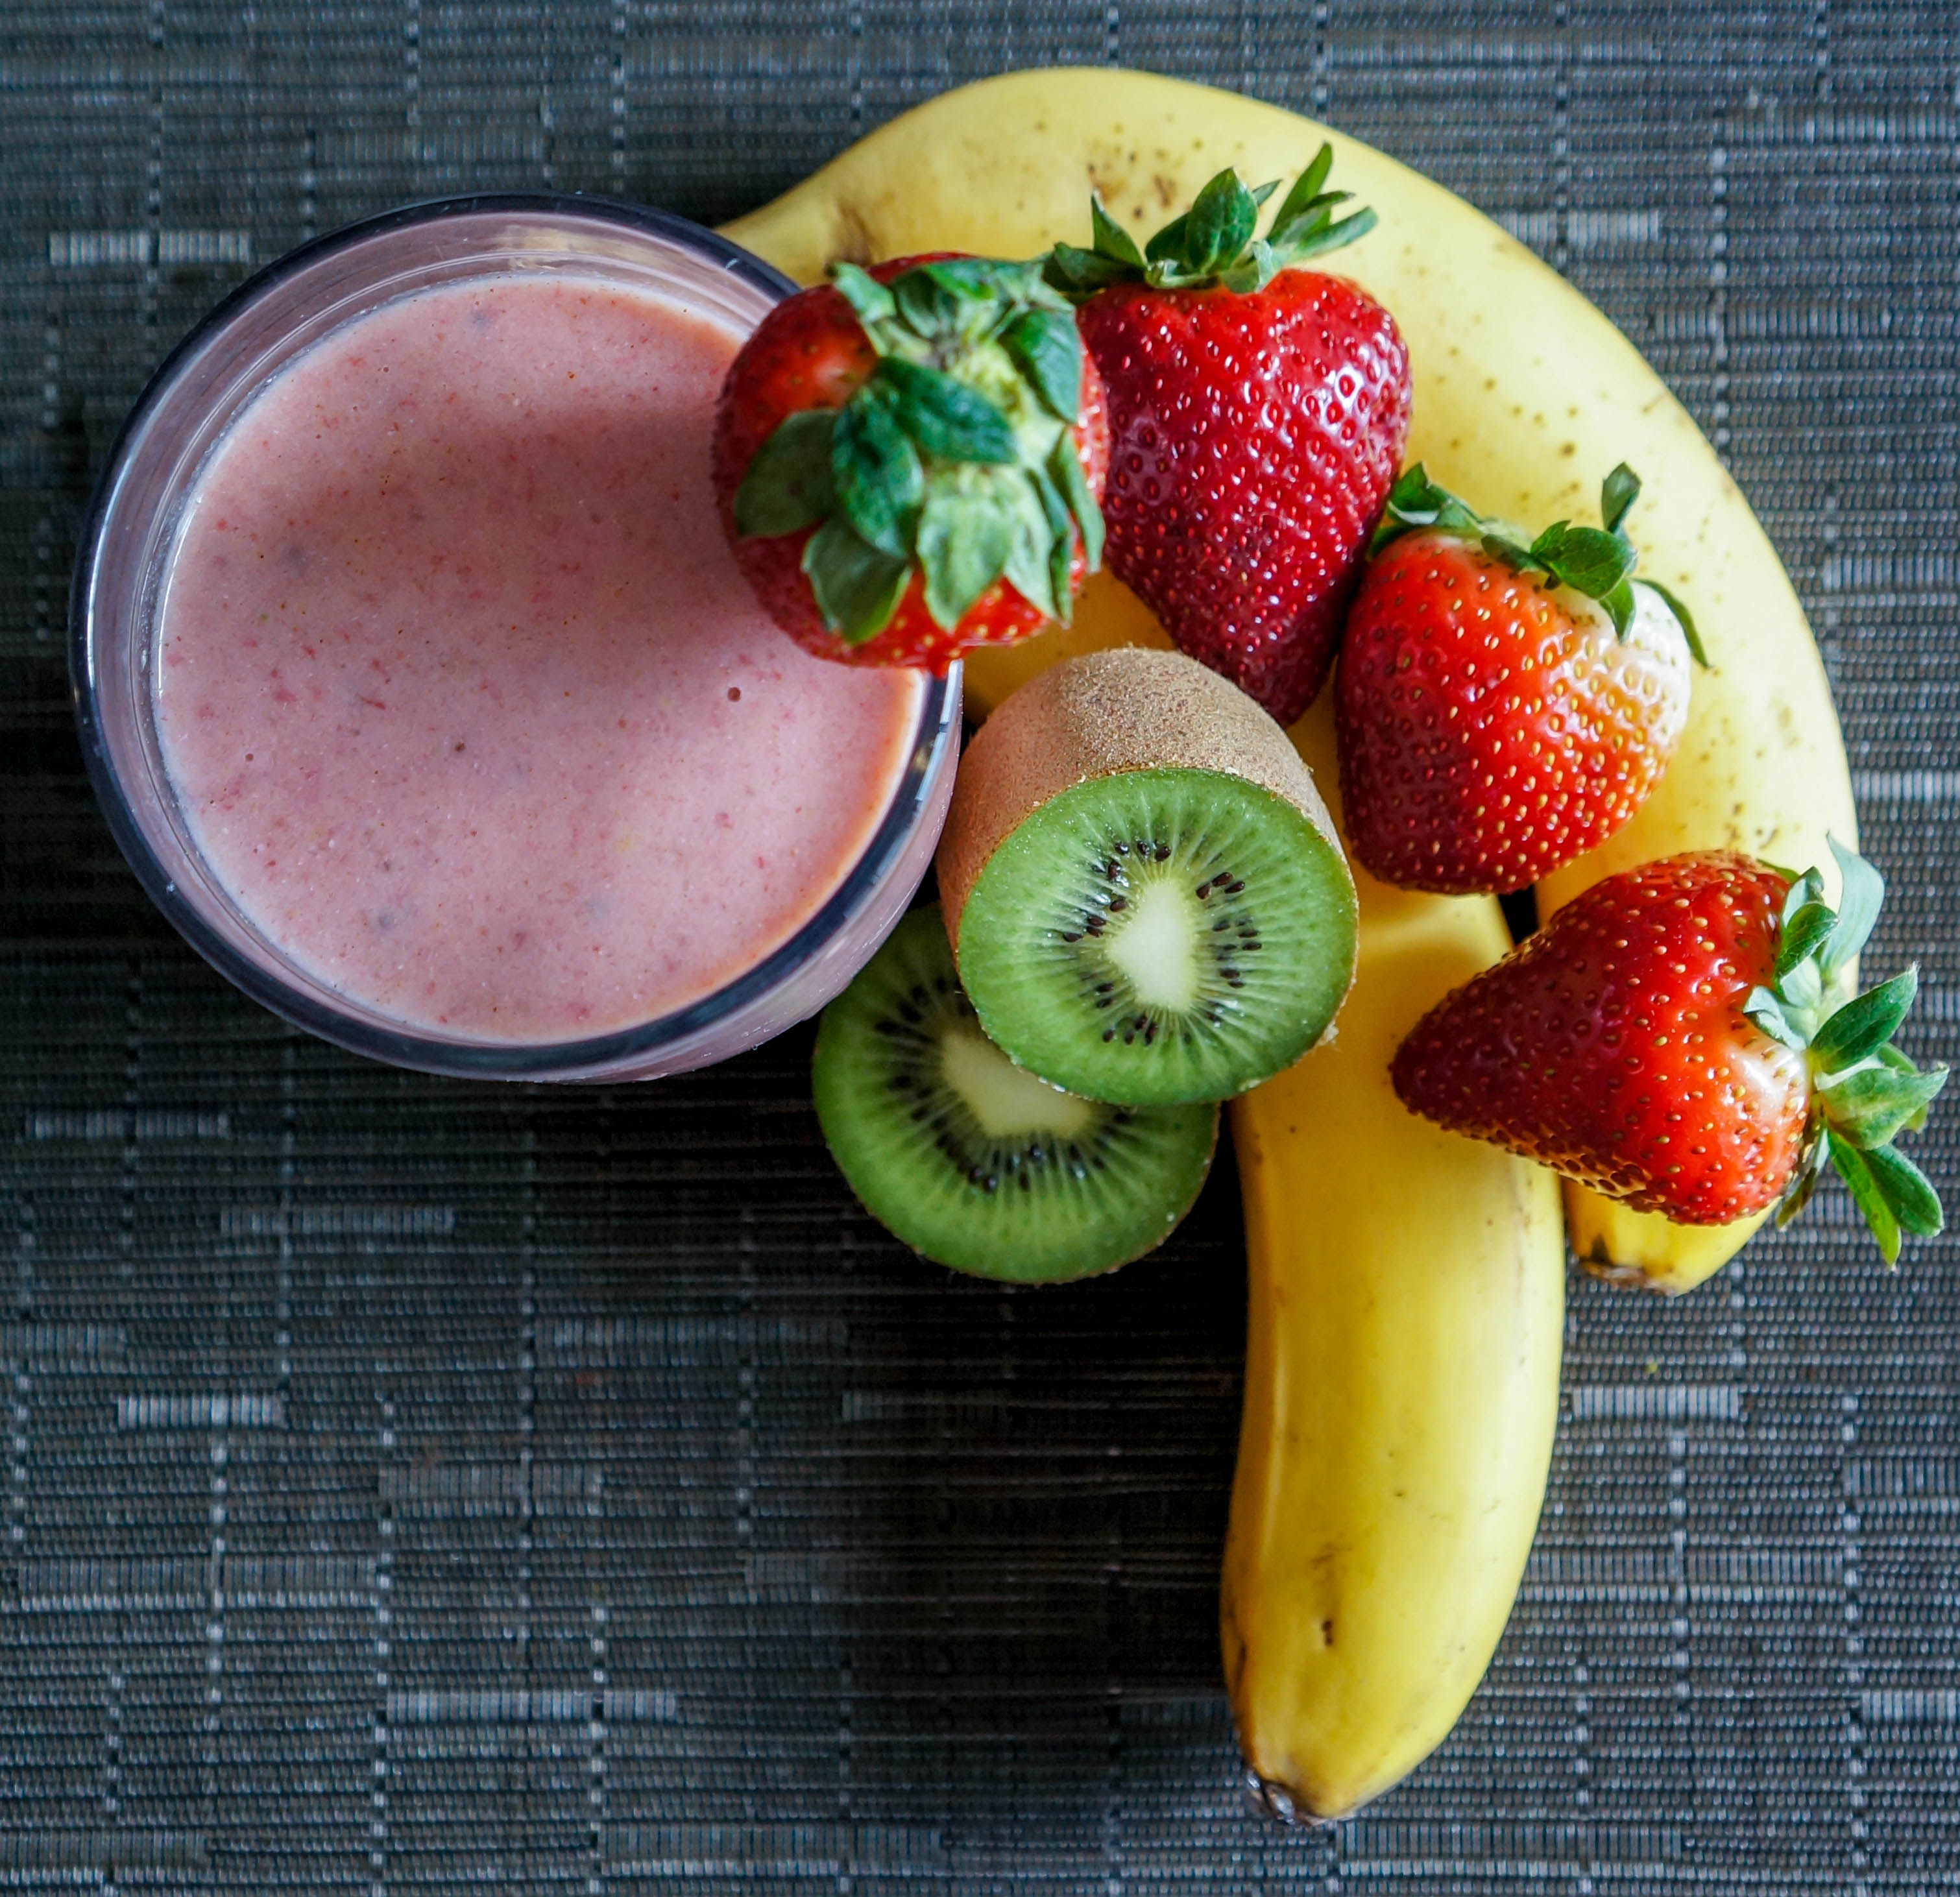 Strawberry-Banana-Kiwi-Flax-1